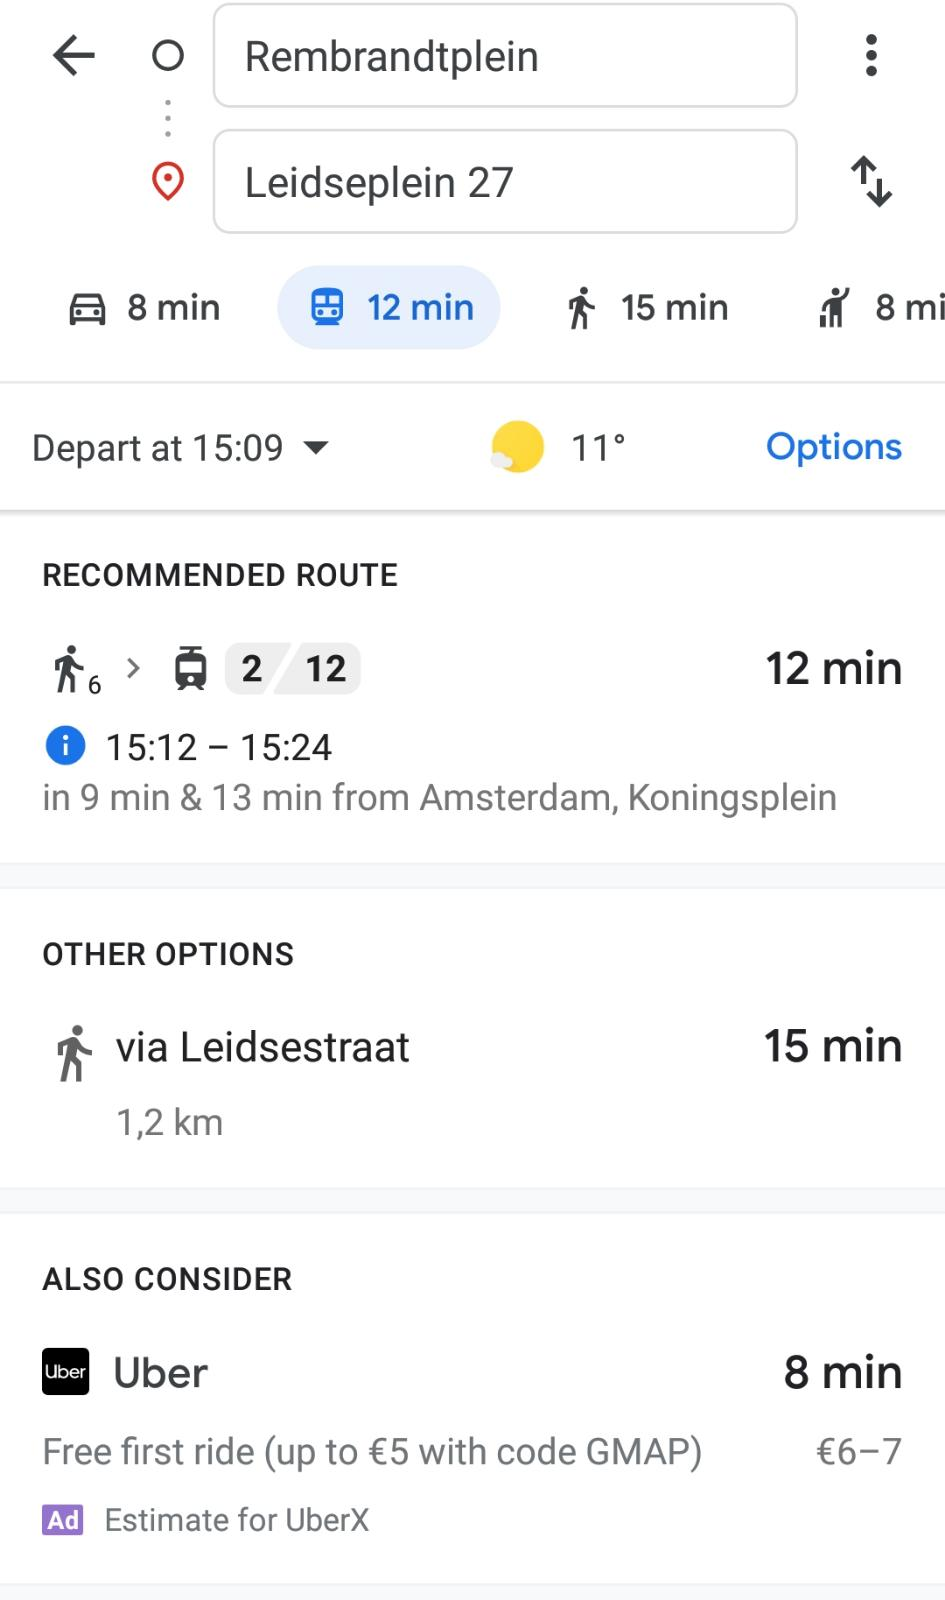 Going from Rembrandtplein to Leidseplein 27 (Google Maps)